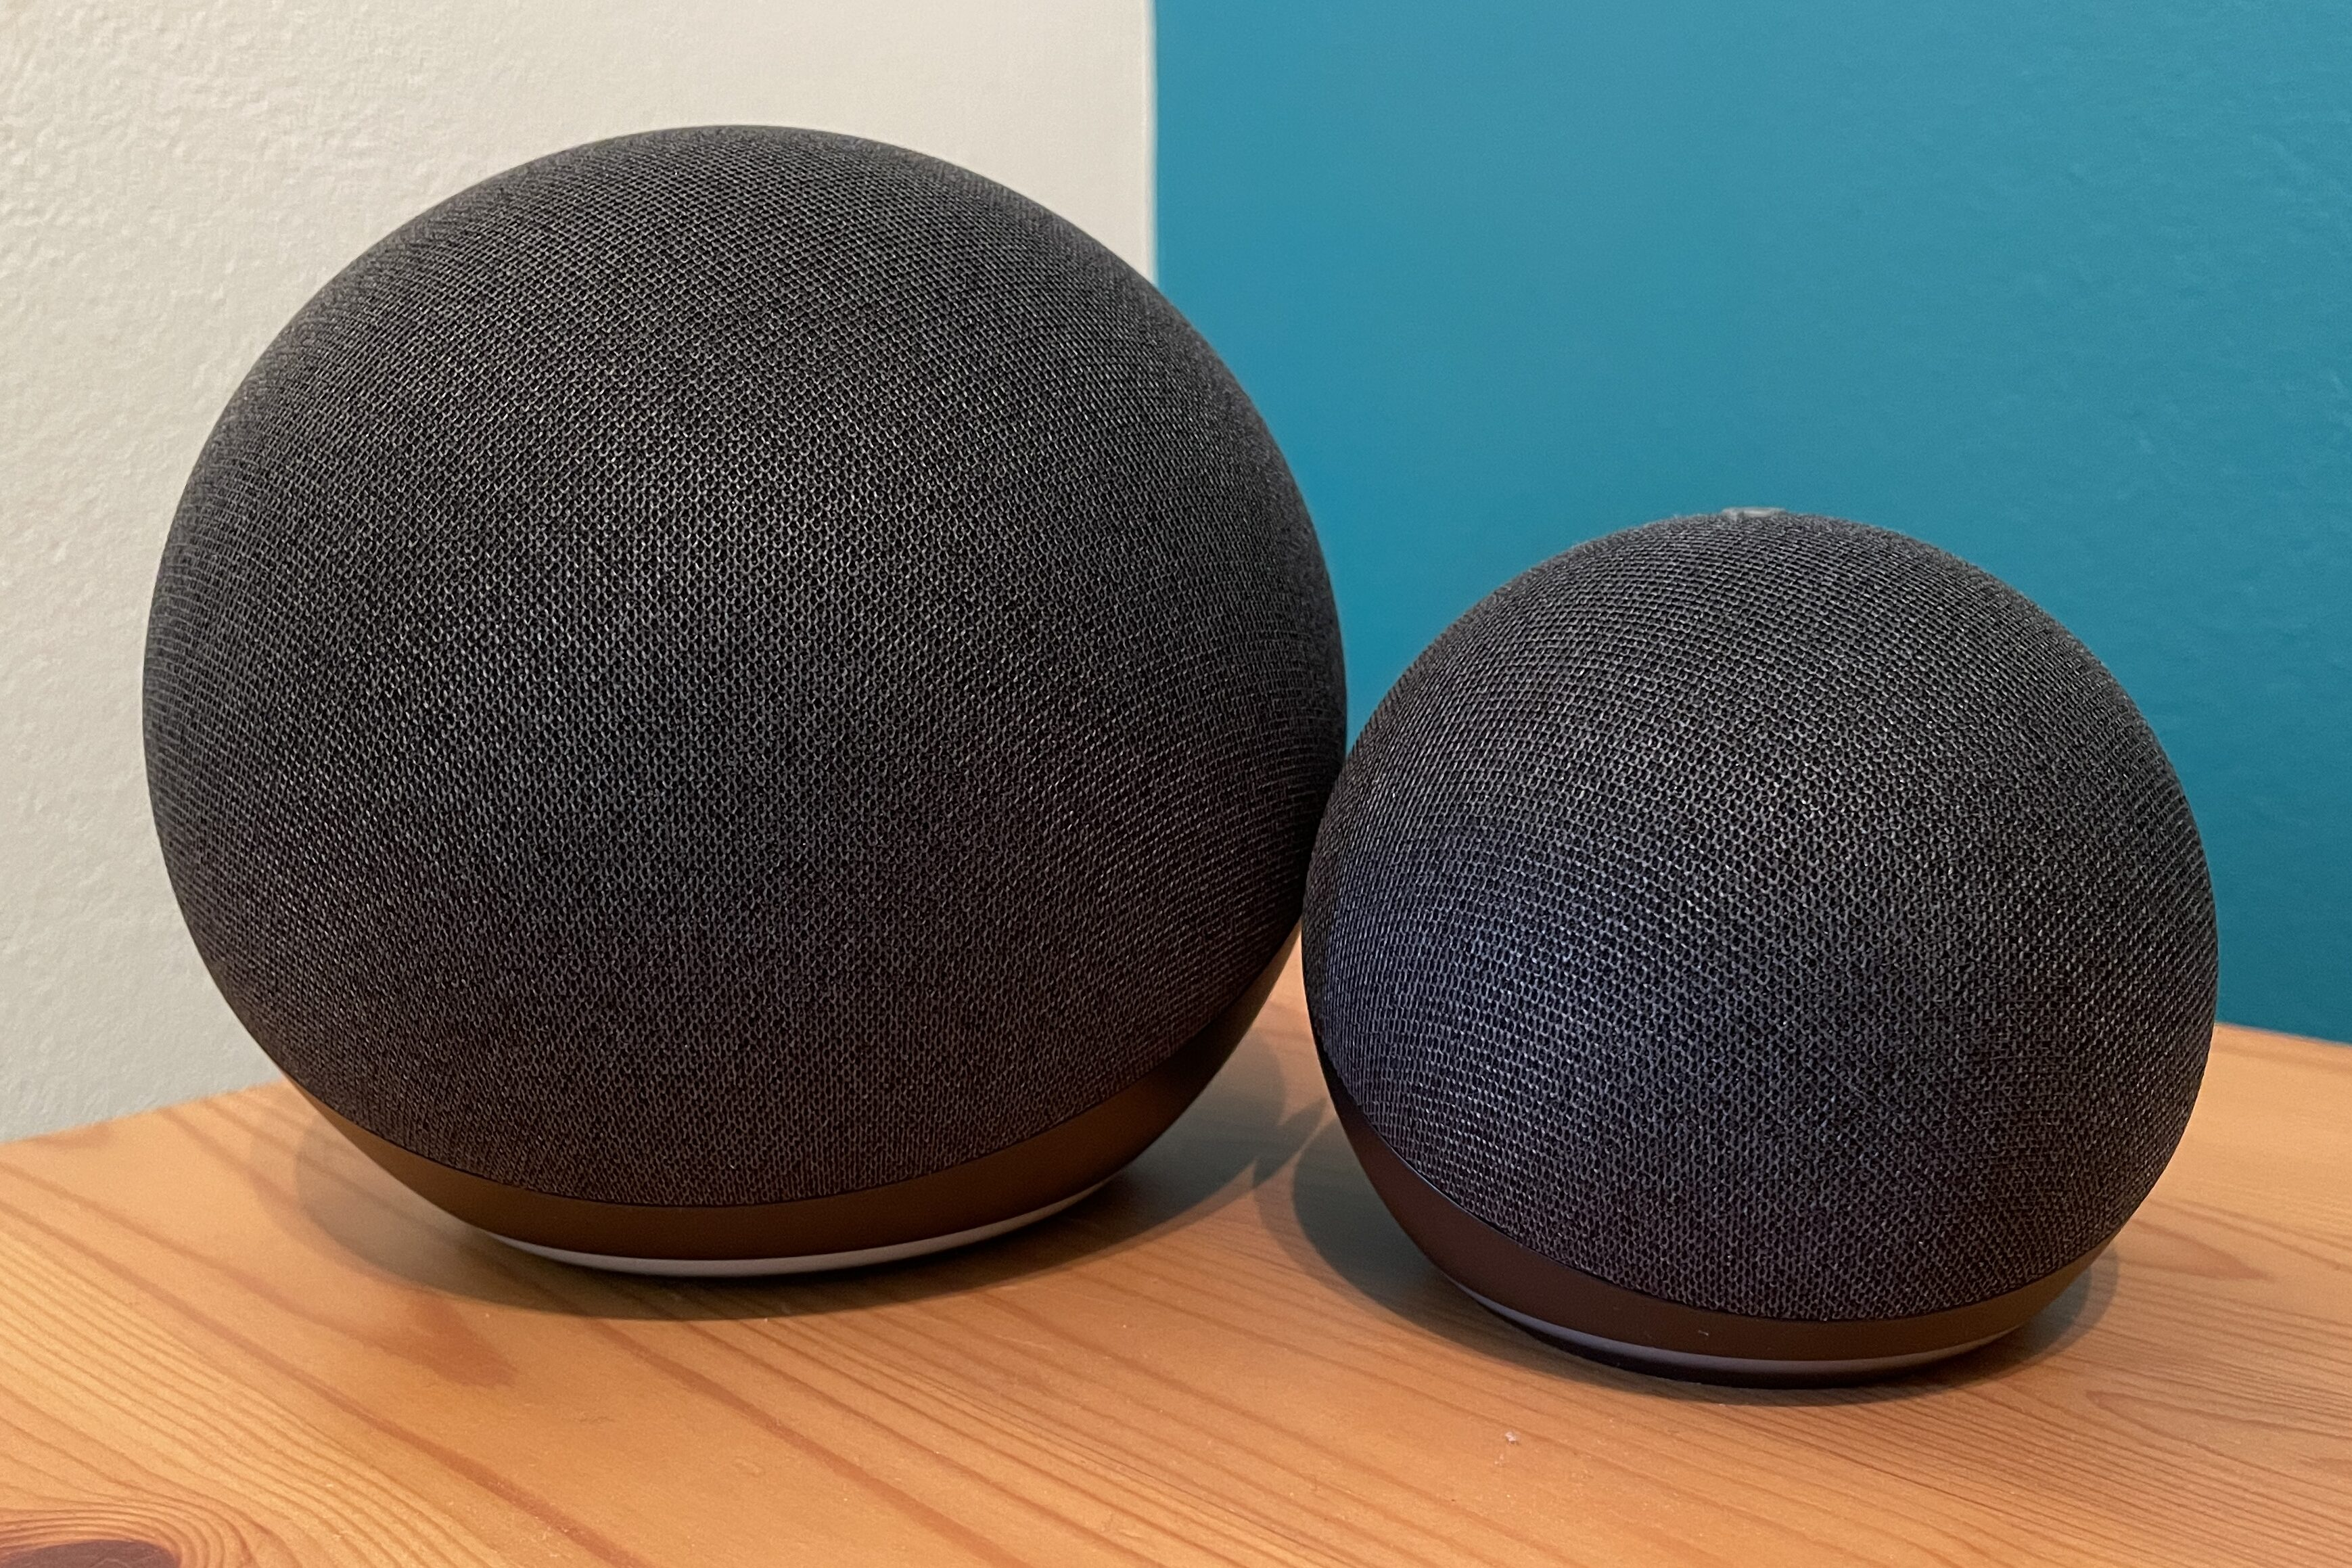 Charcoal Amazon Echo and Echo dot side by side